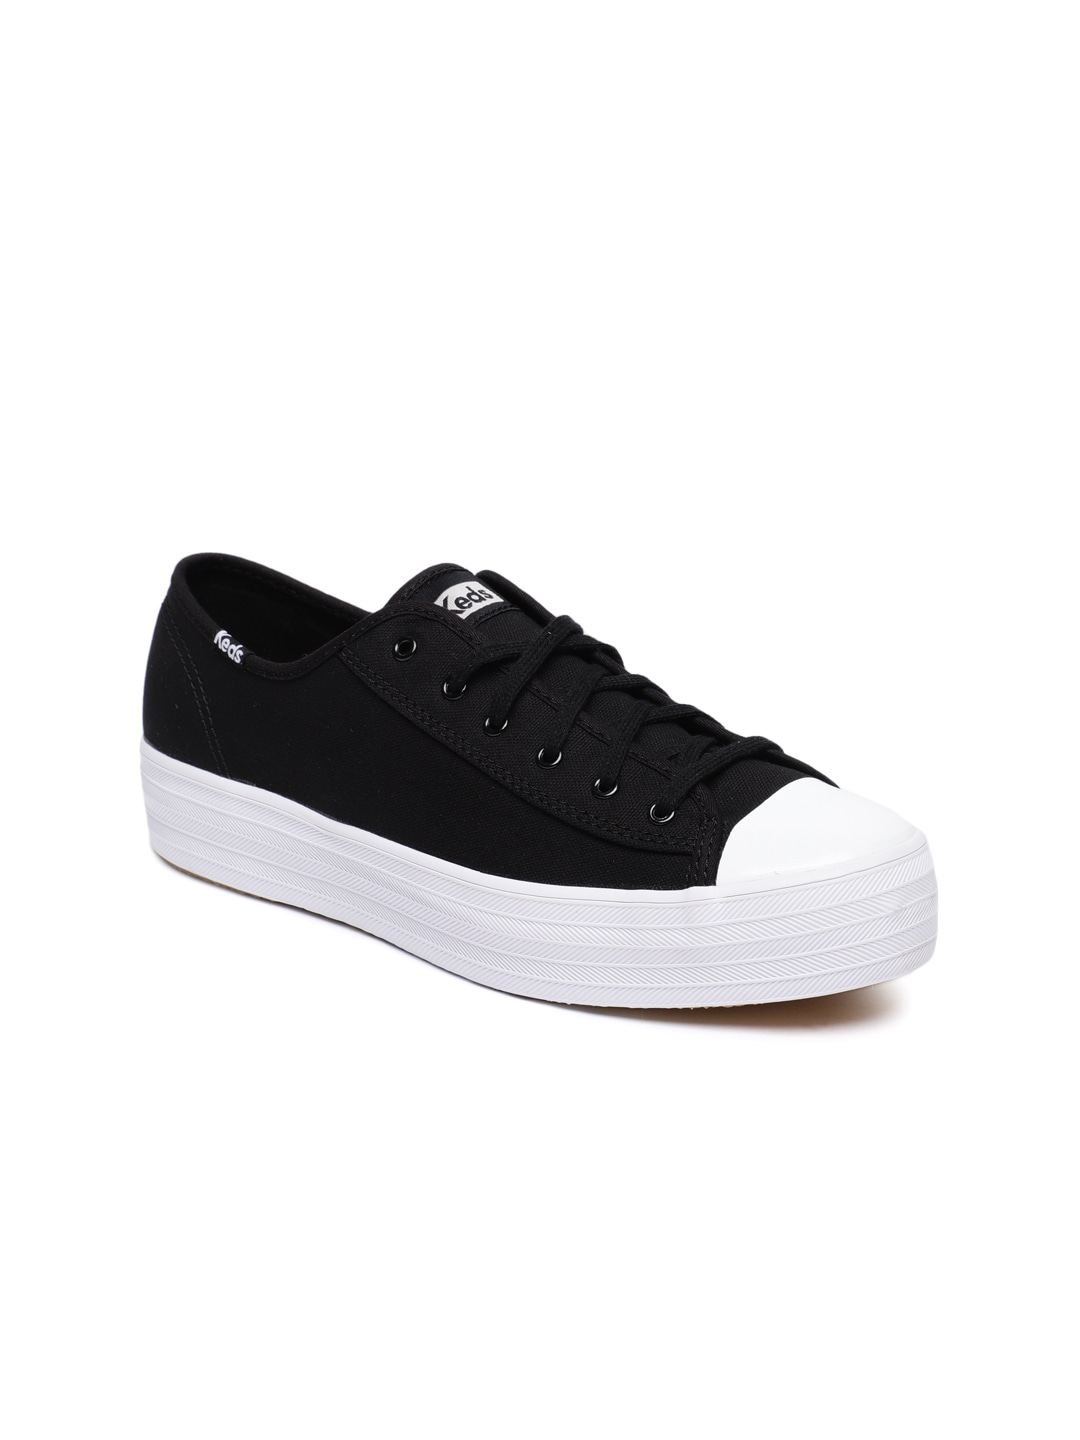 fcf39cac308e6 Keds Store - Buy Footwears from Keds Store Online